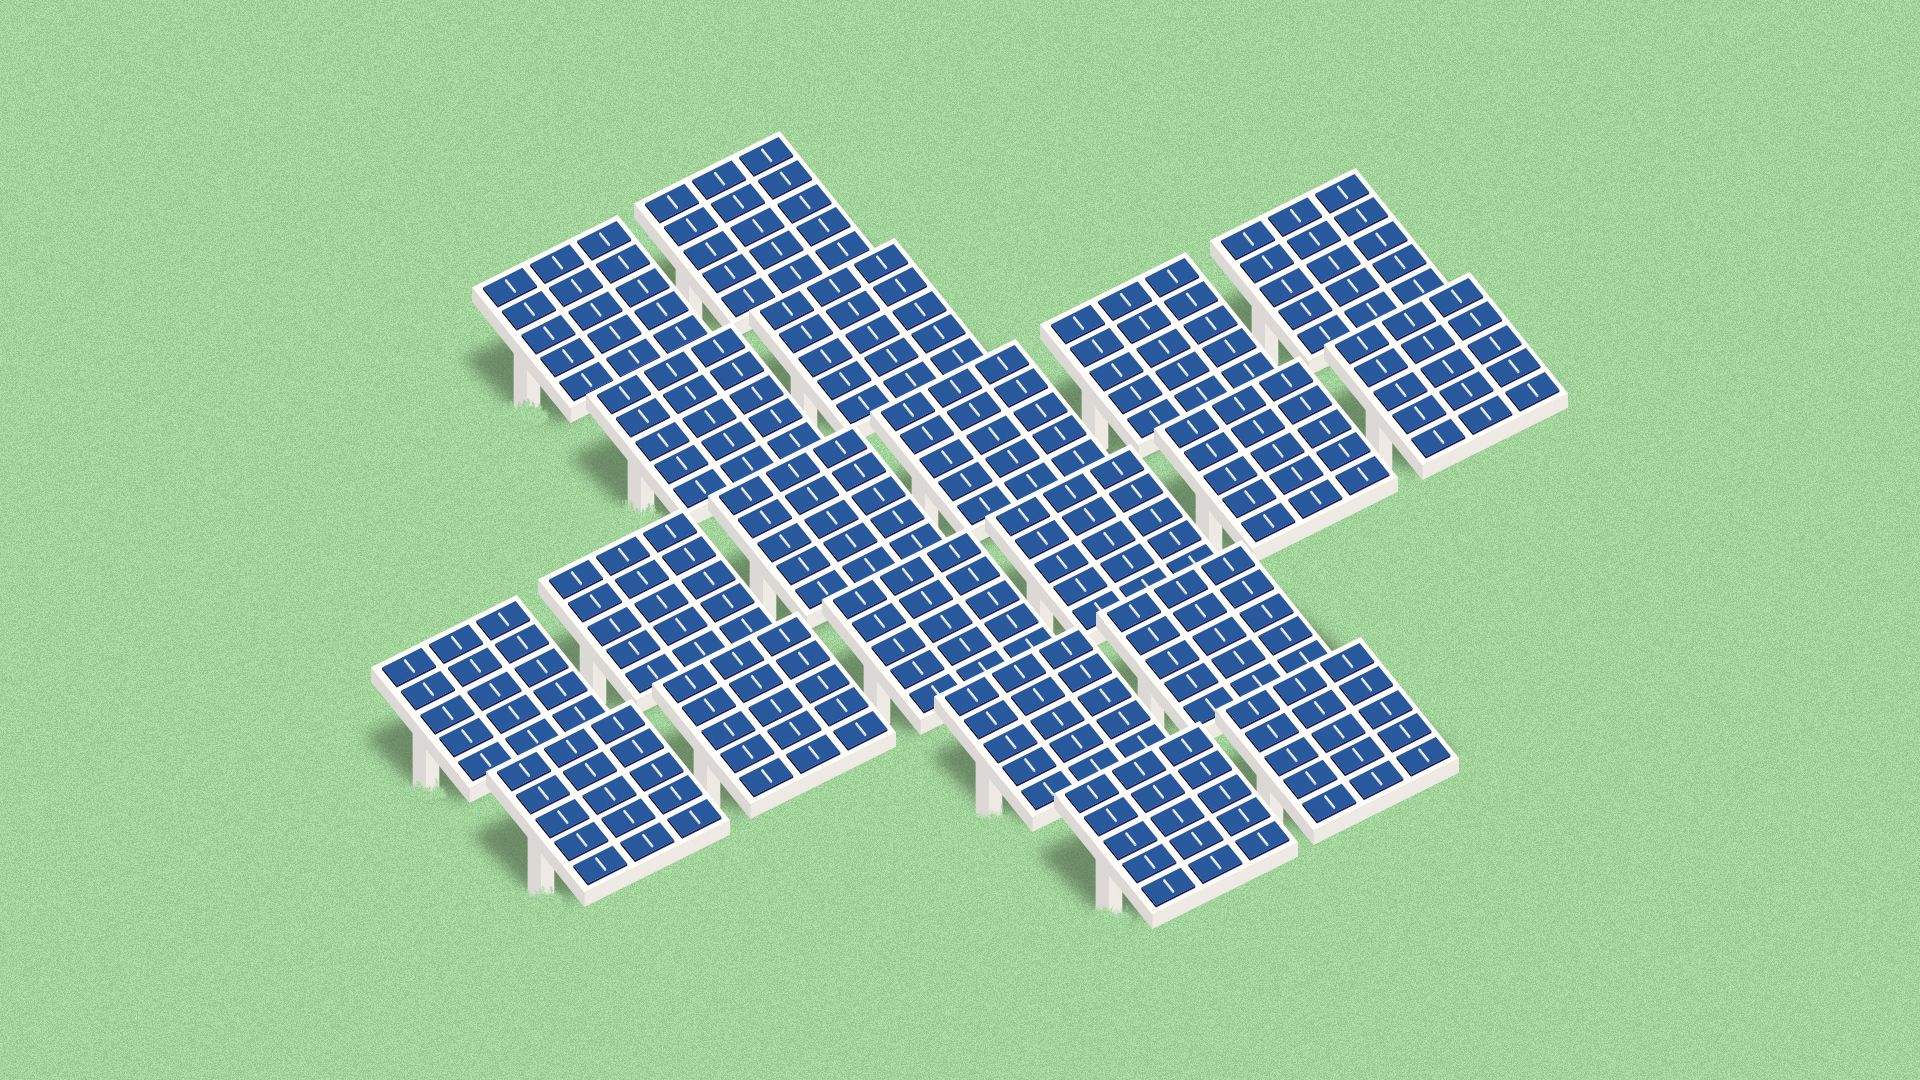 Illustration of a field of solar panels in the shape of a health cross.